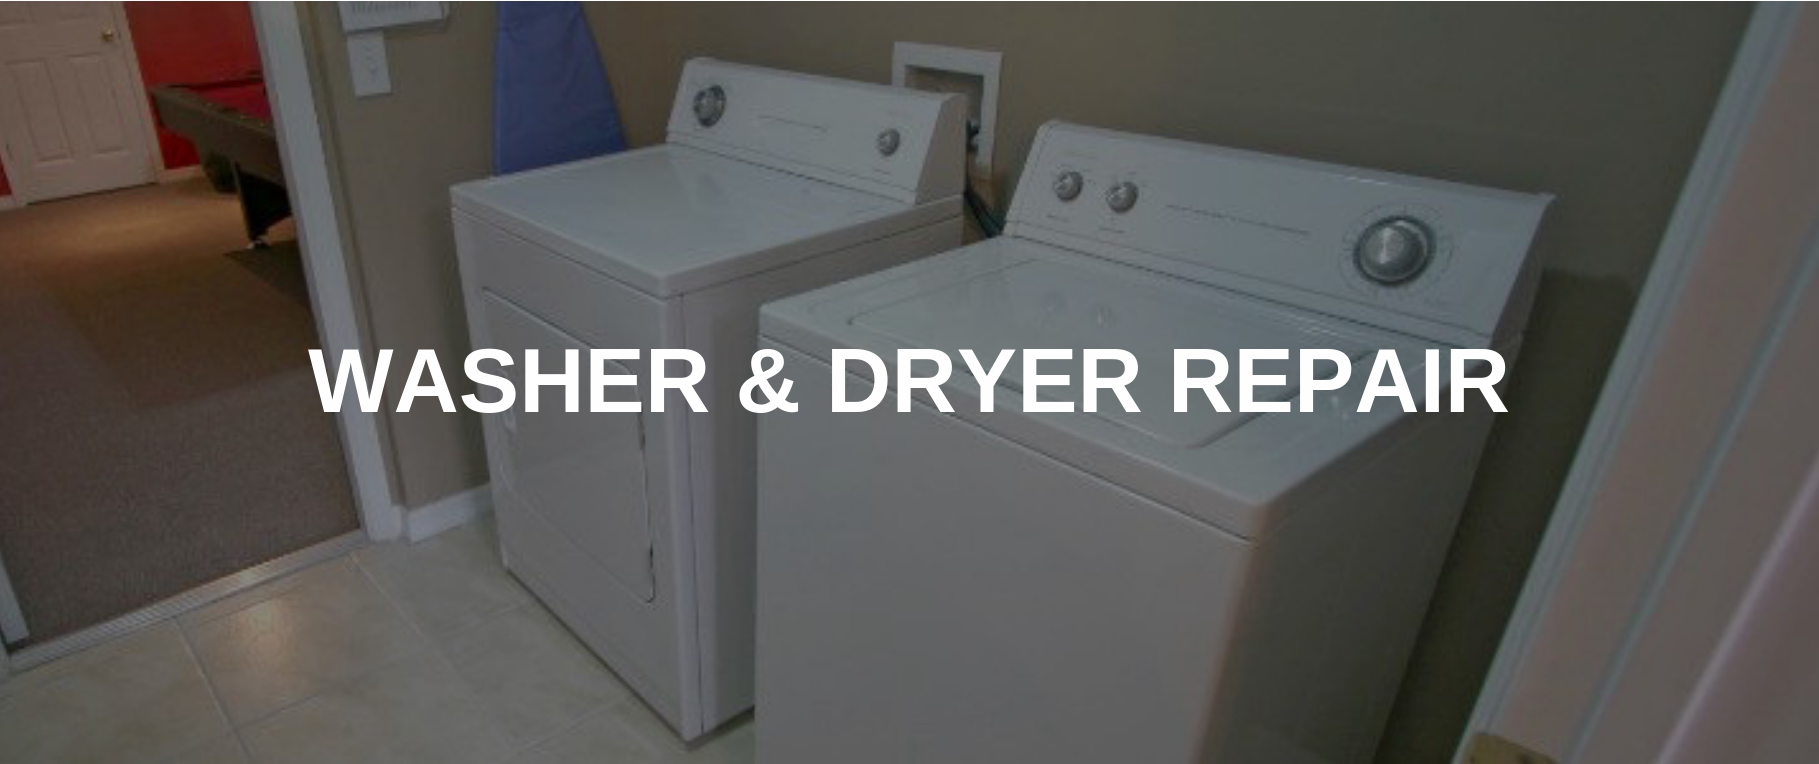 washing machine repair salem or